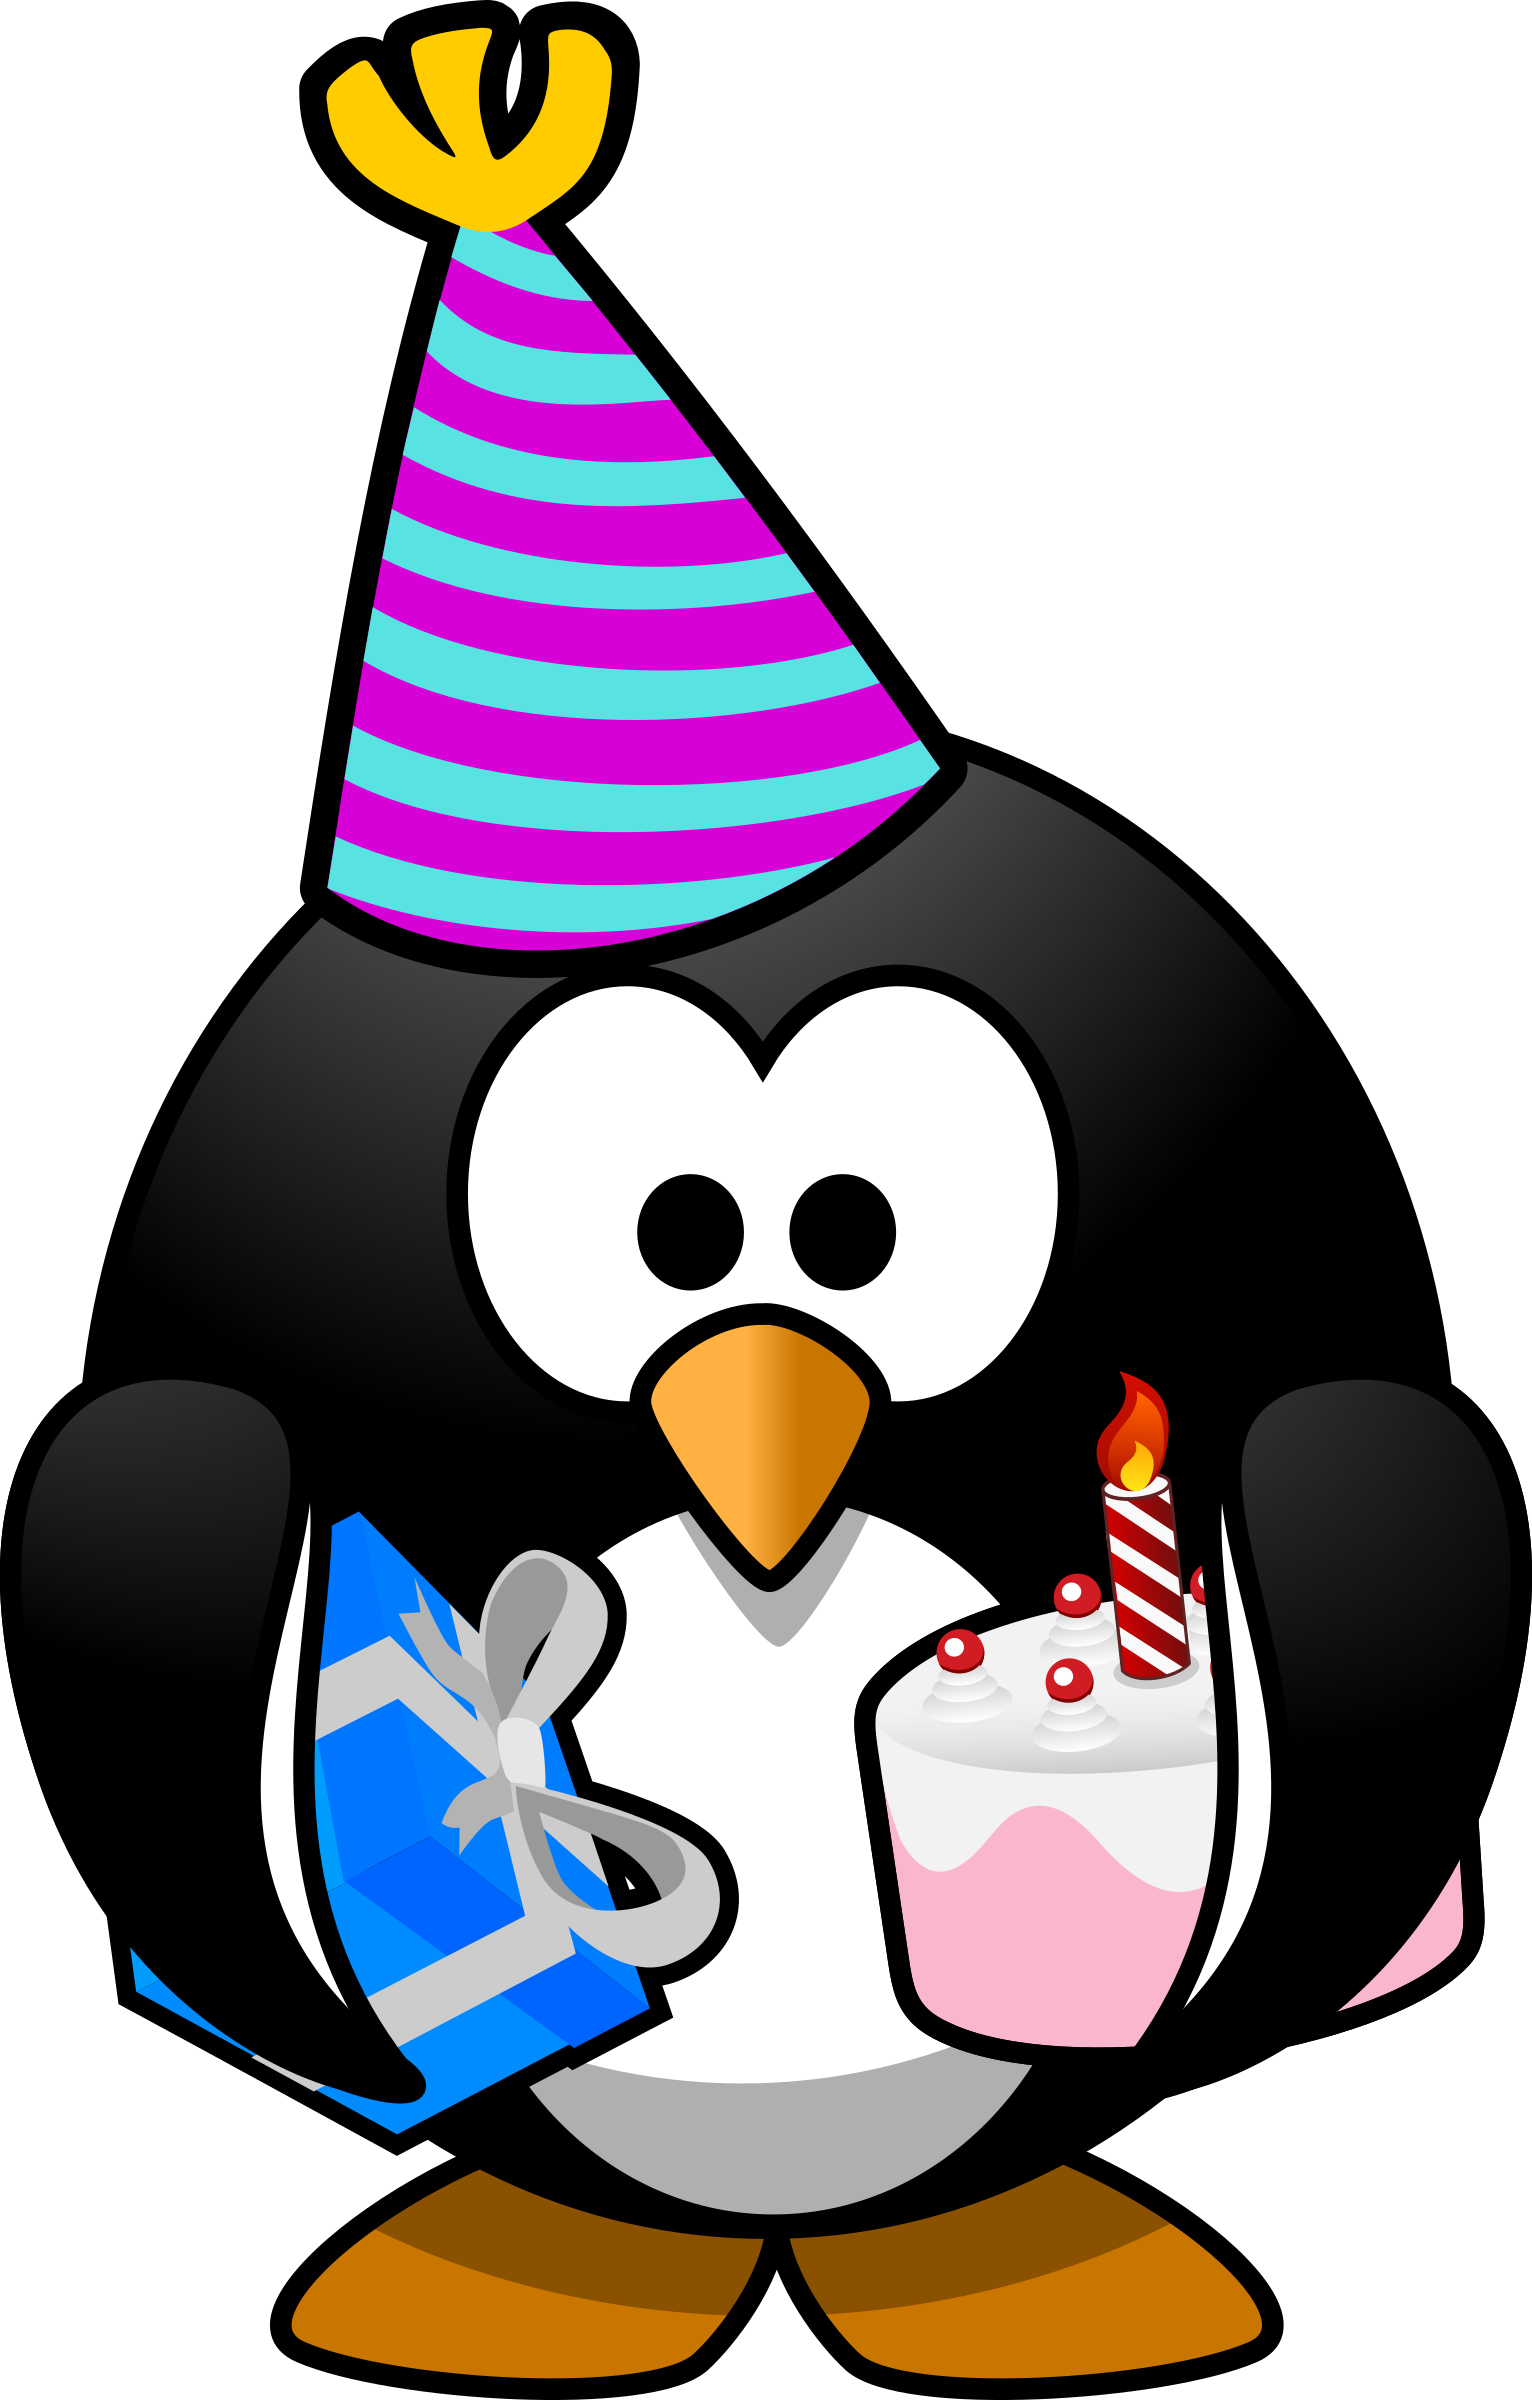 birthday party hat clipart at getdrawings com free for personal rh getdrawings com free clipart birthday pictures clipart birthday cake pictures